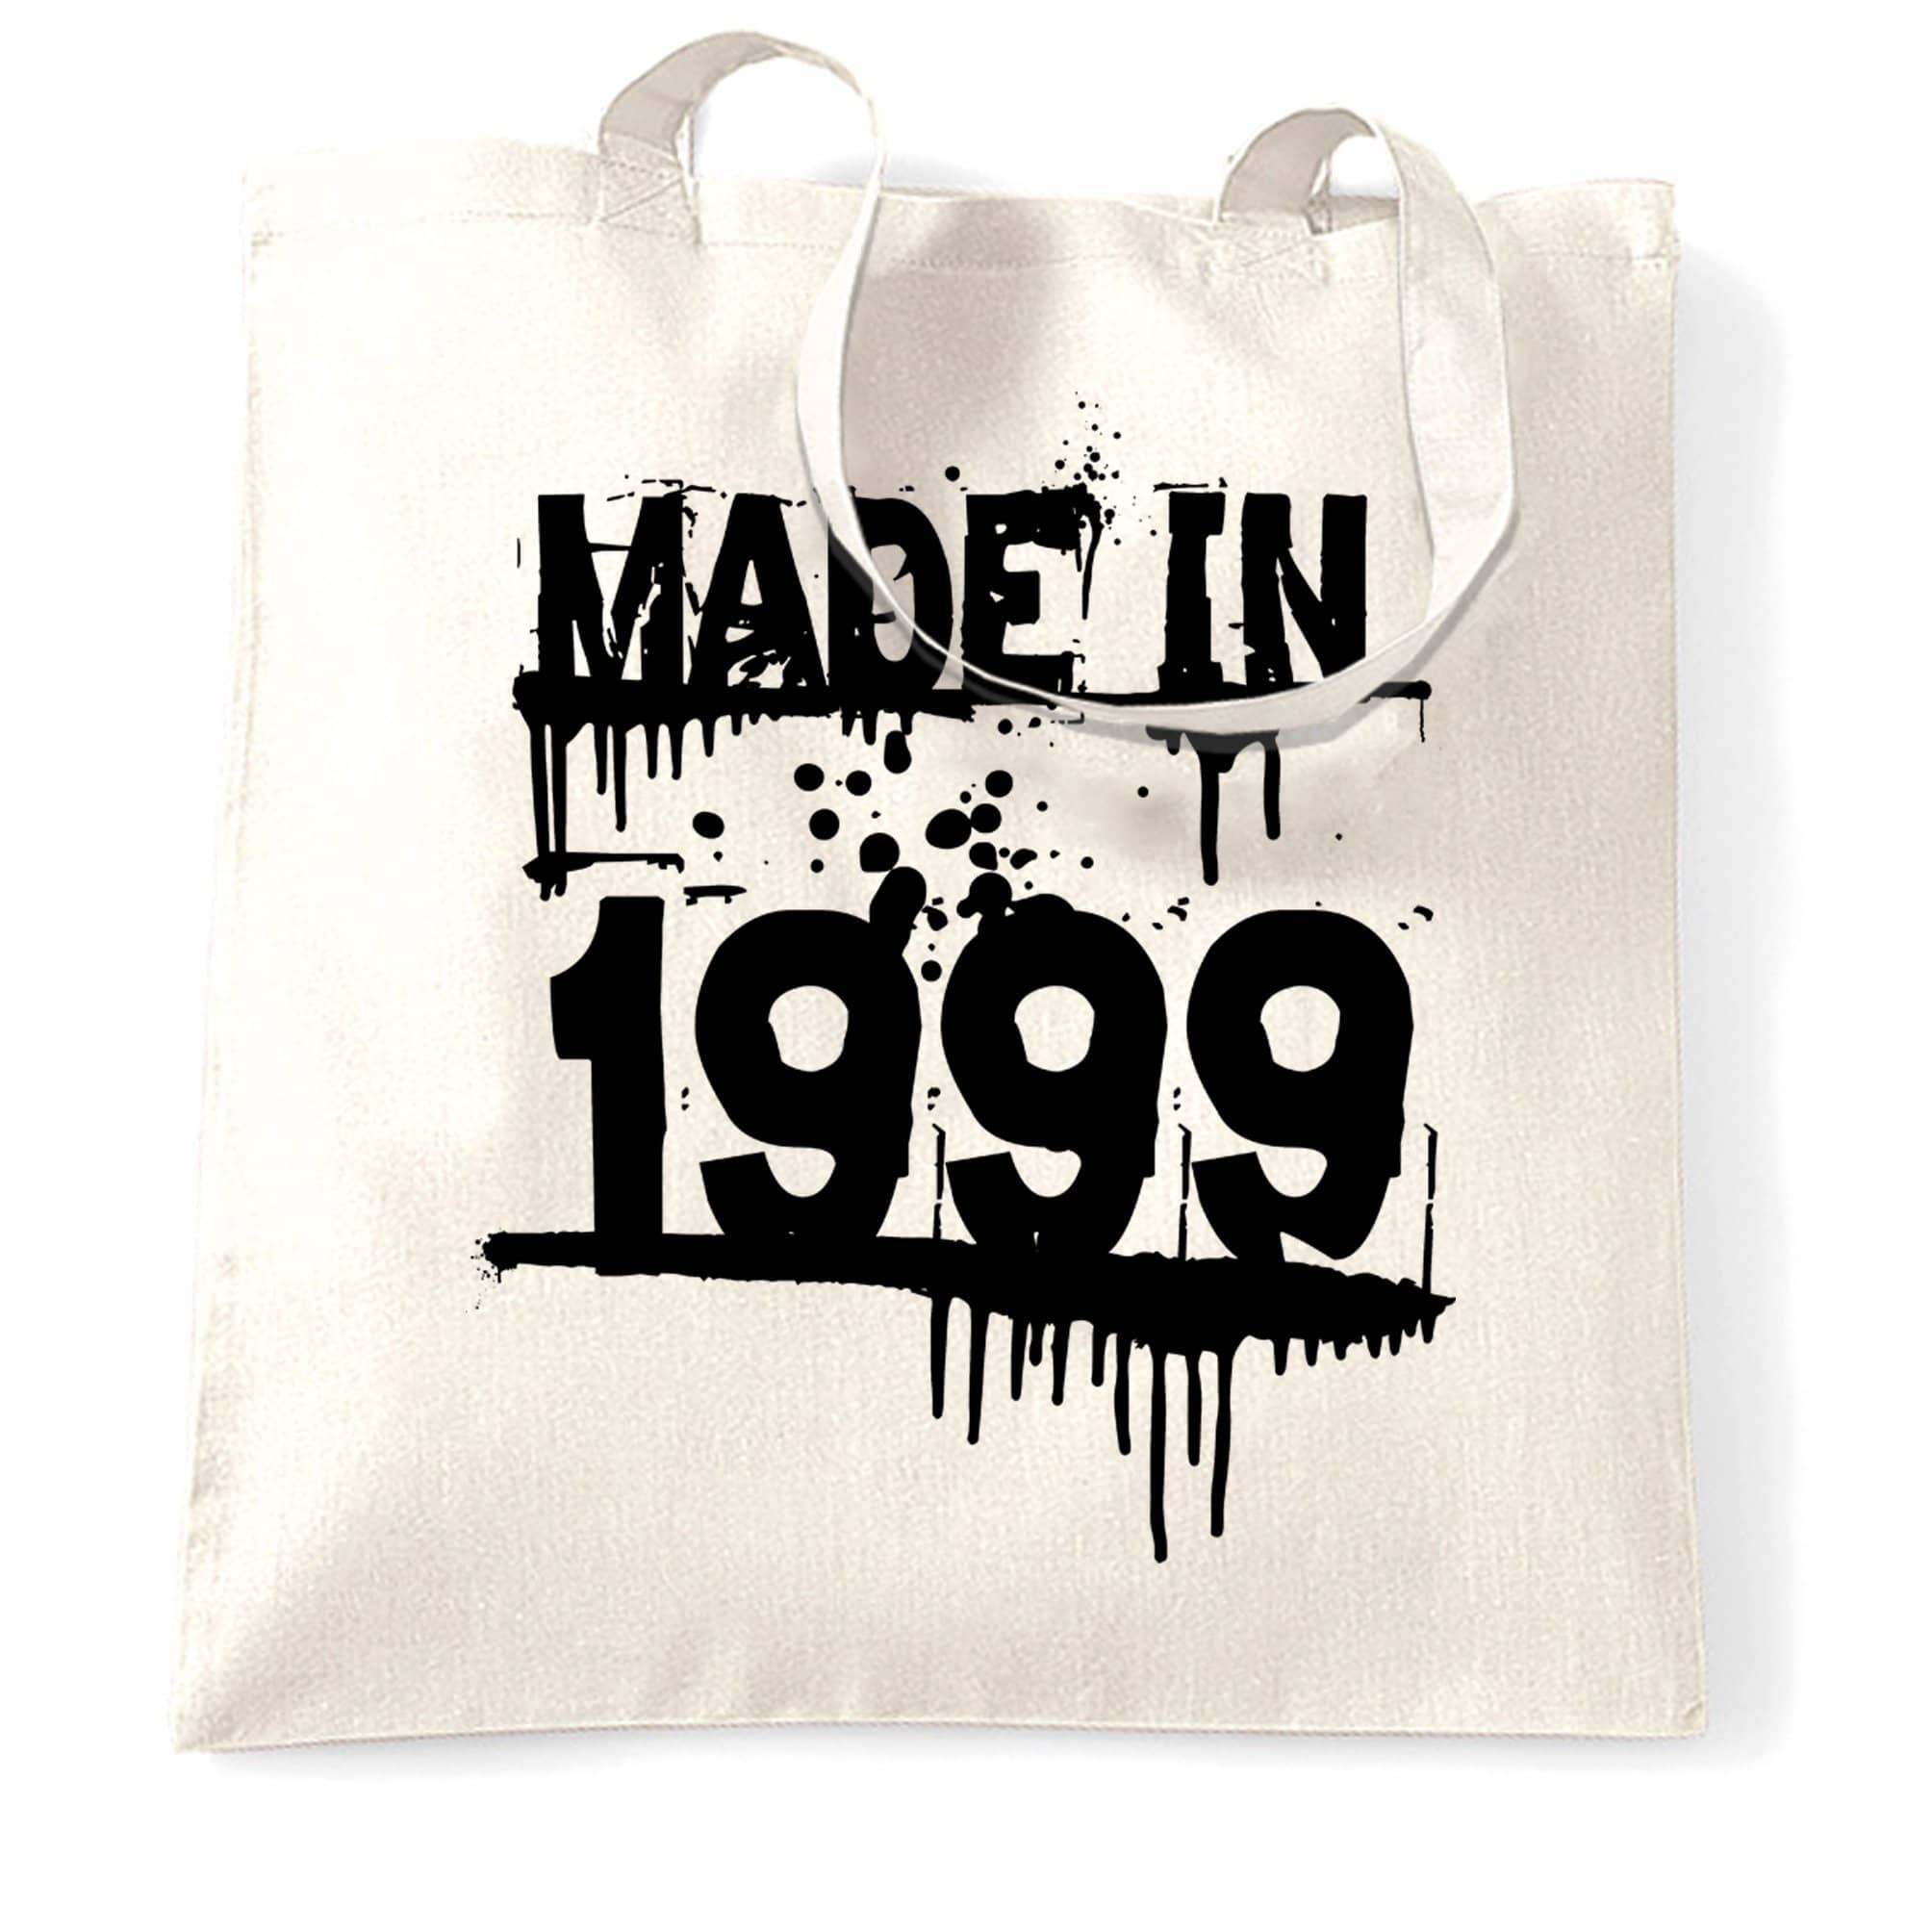 Birthday Tote Bag Made in 1999 Graffiti